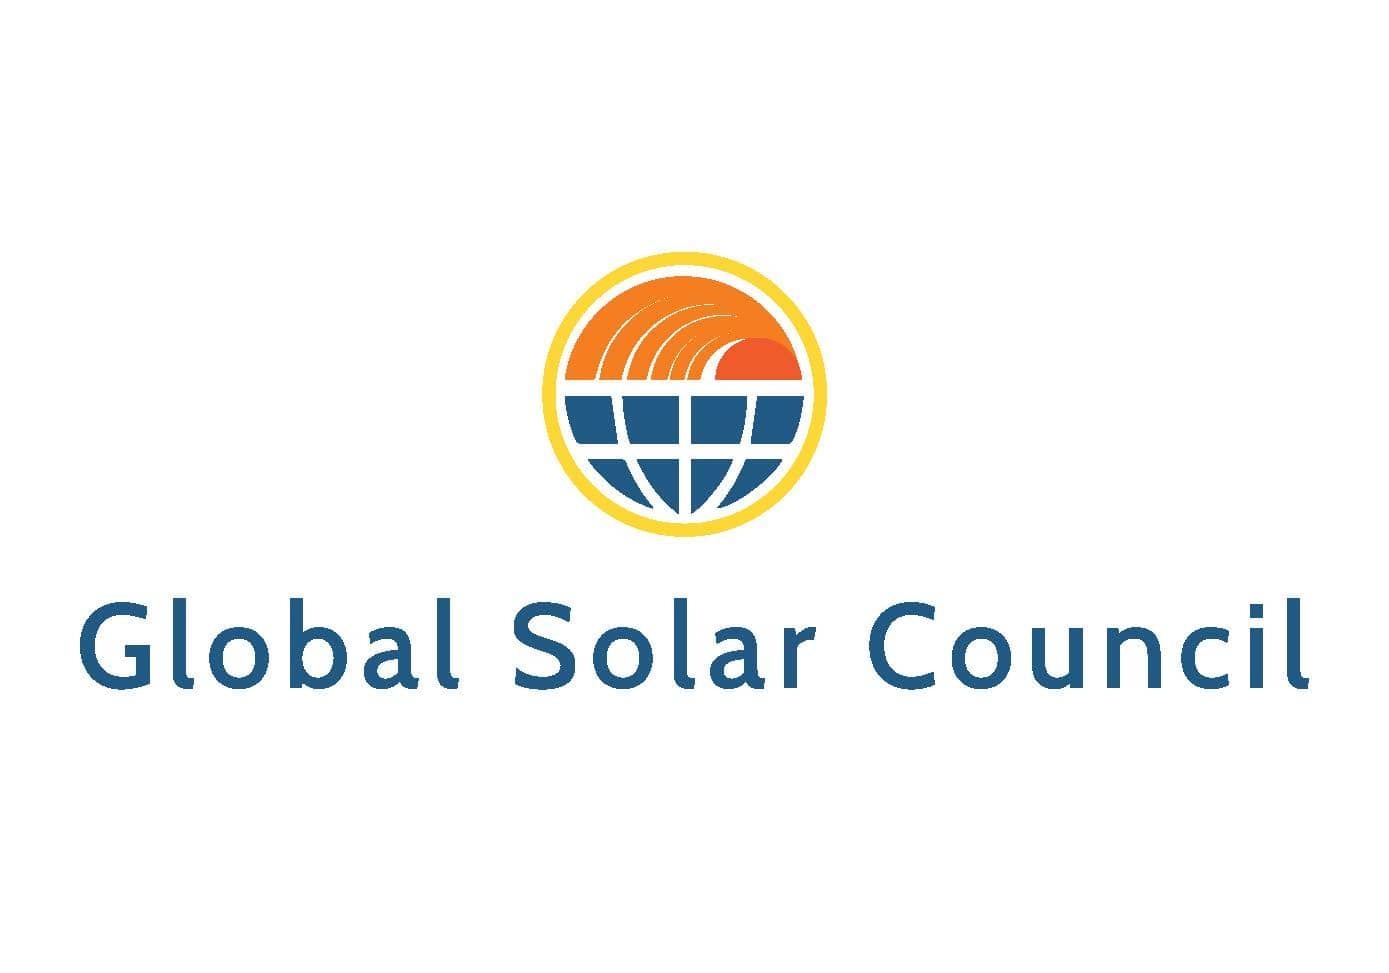 GSCcentered Corporations Team Up With The Global Solar Council